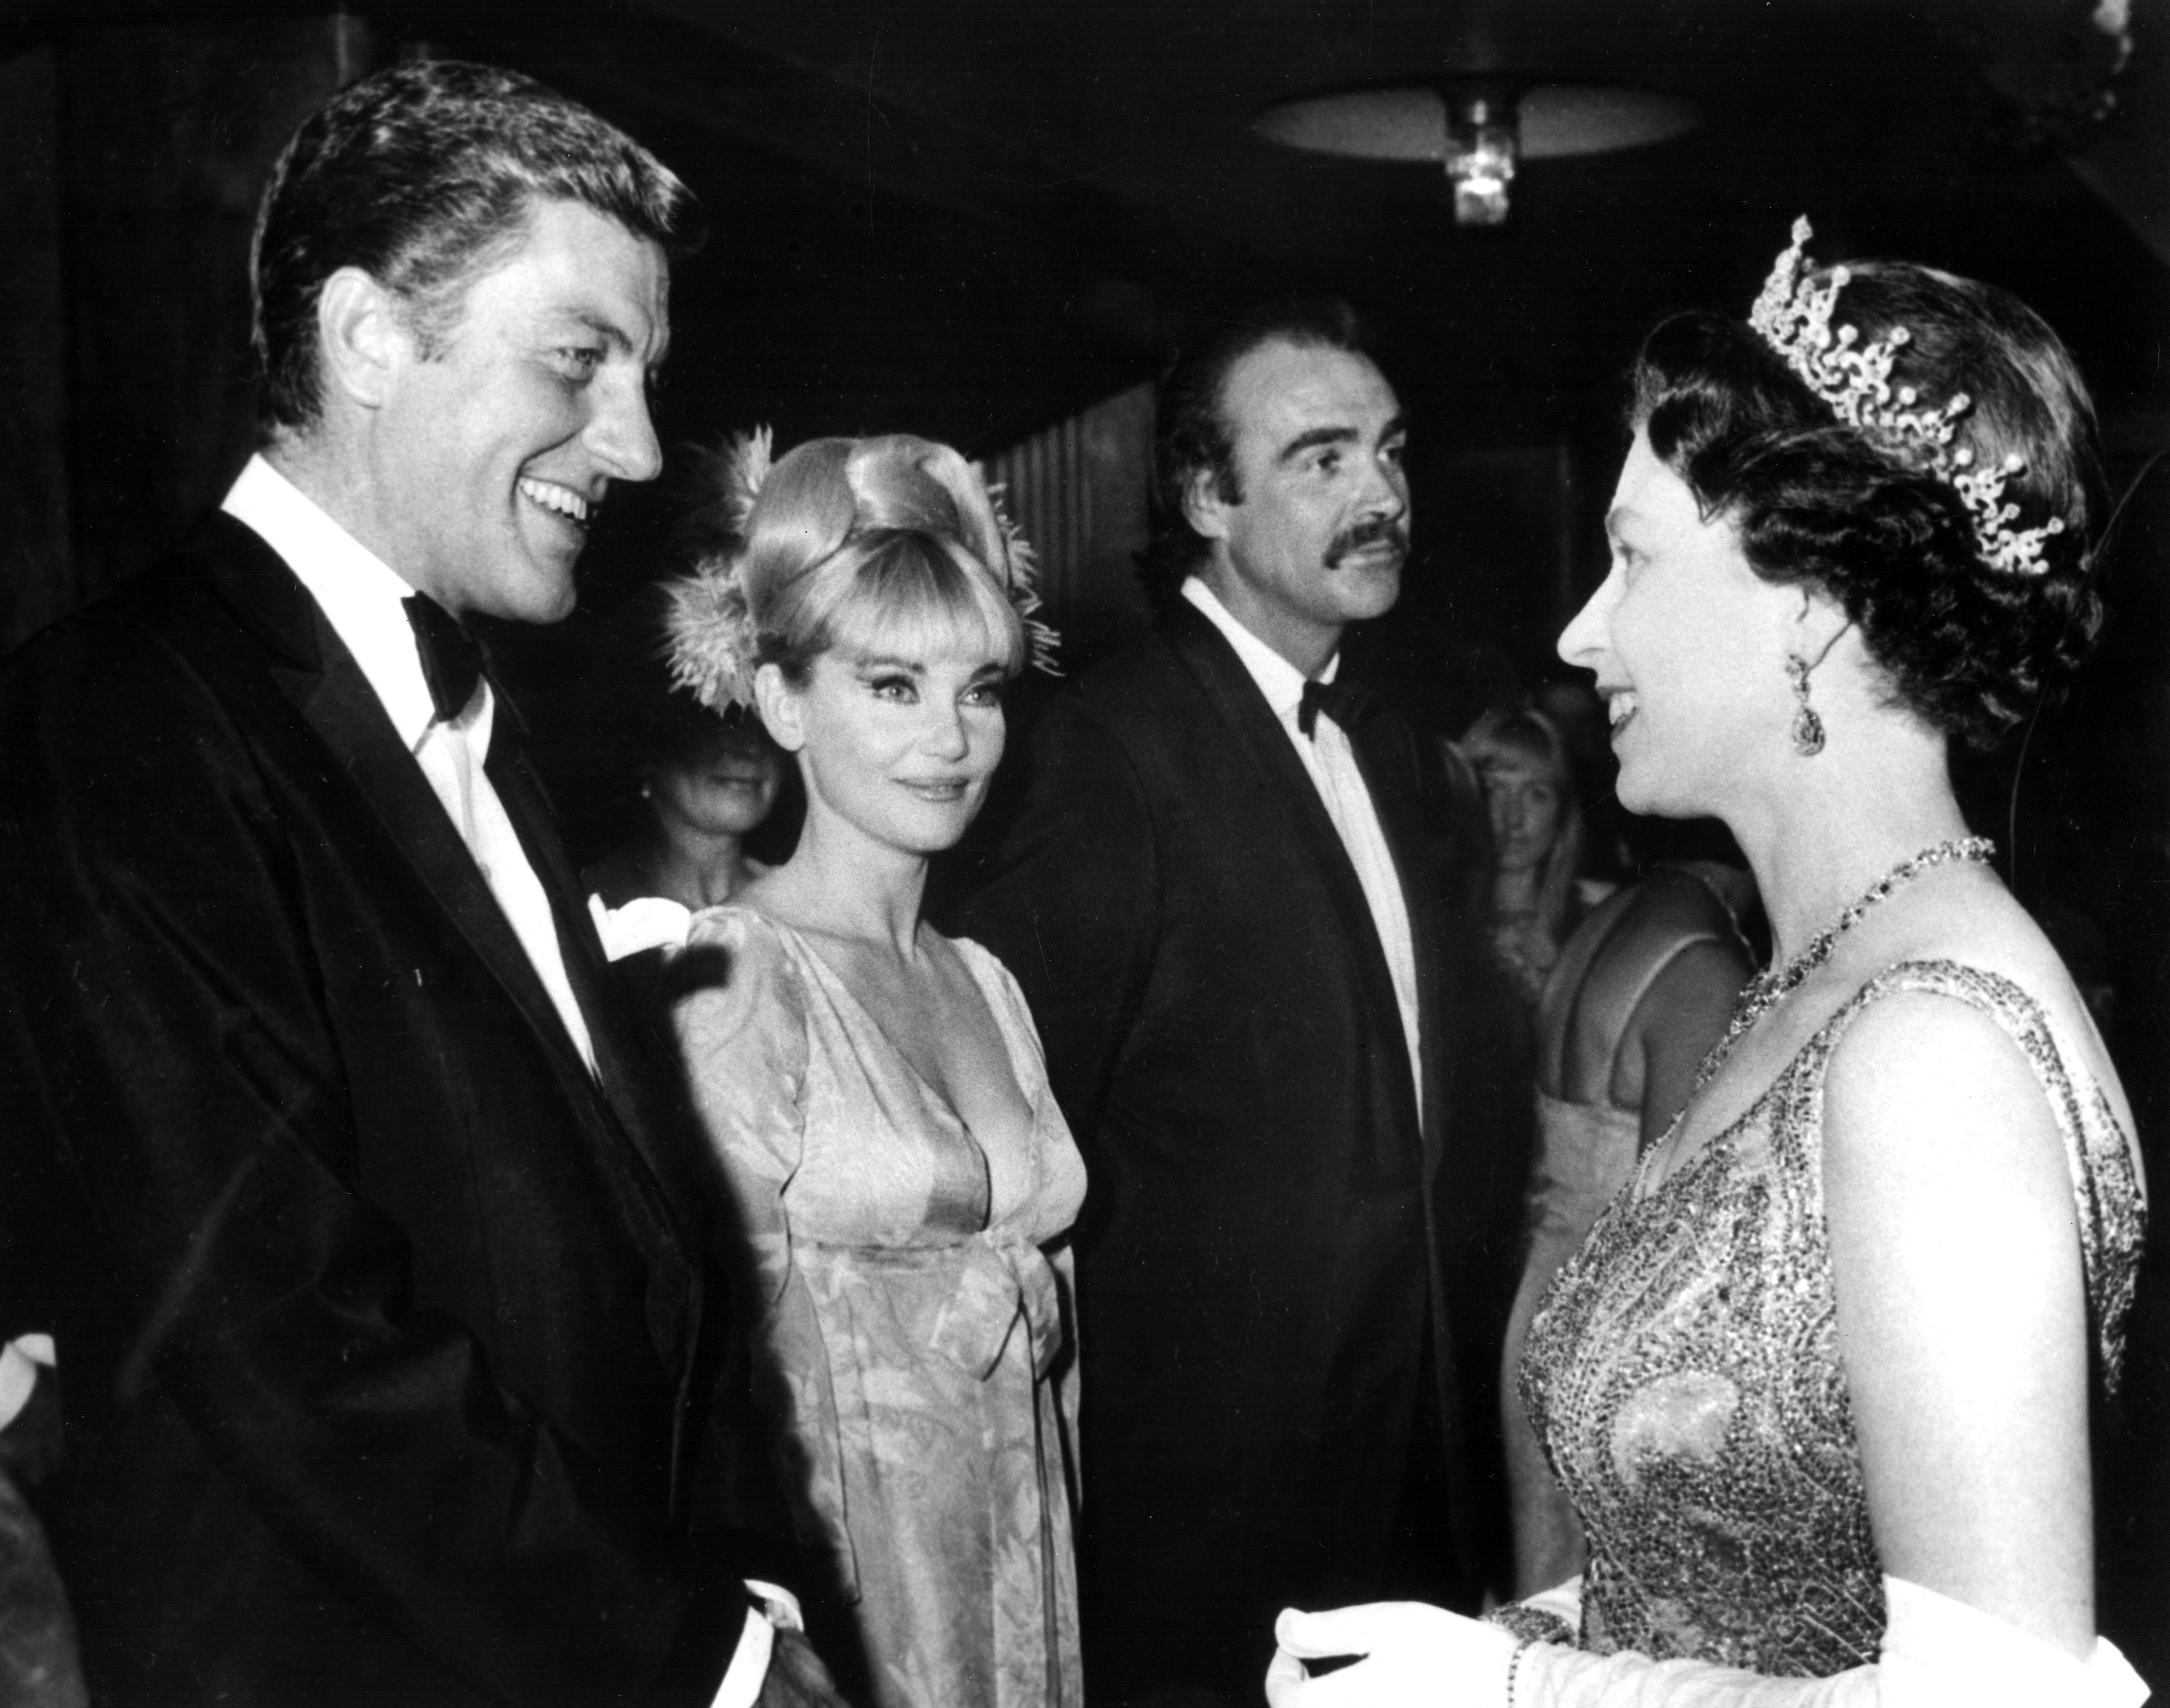 Queen Elizabeth II meeting Dick Van Dyke, Diane Cilento, and Sean Connery at the London premiere of 'You Only Live Twice' ca. 1967